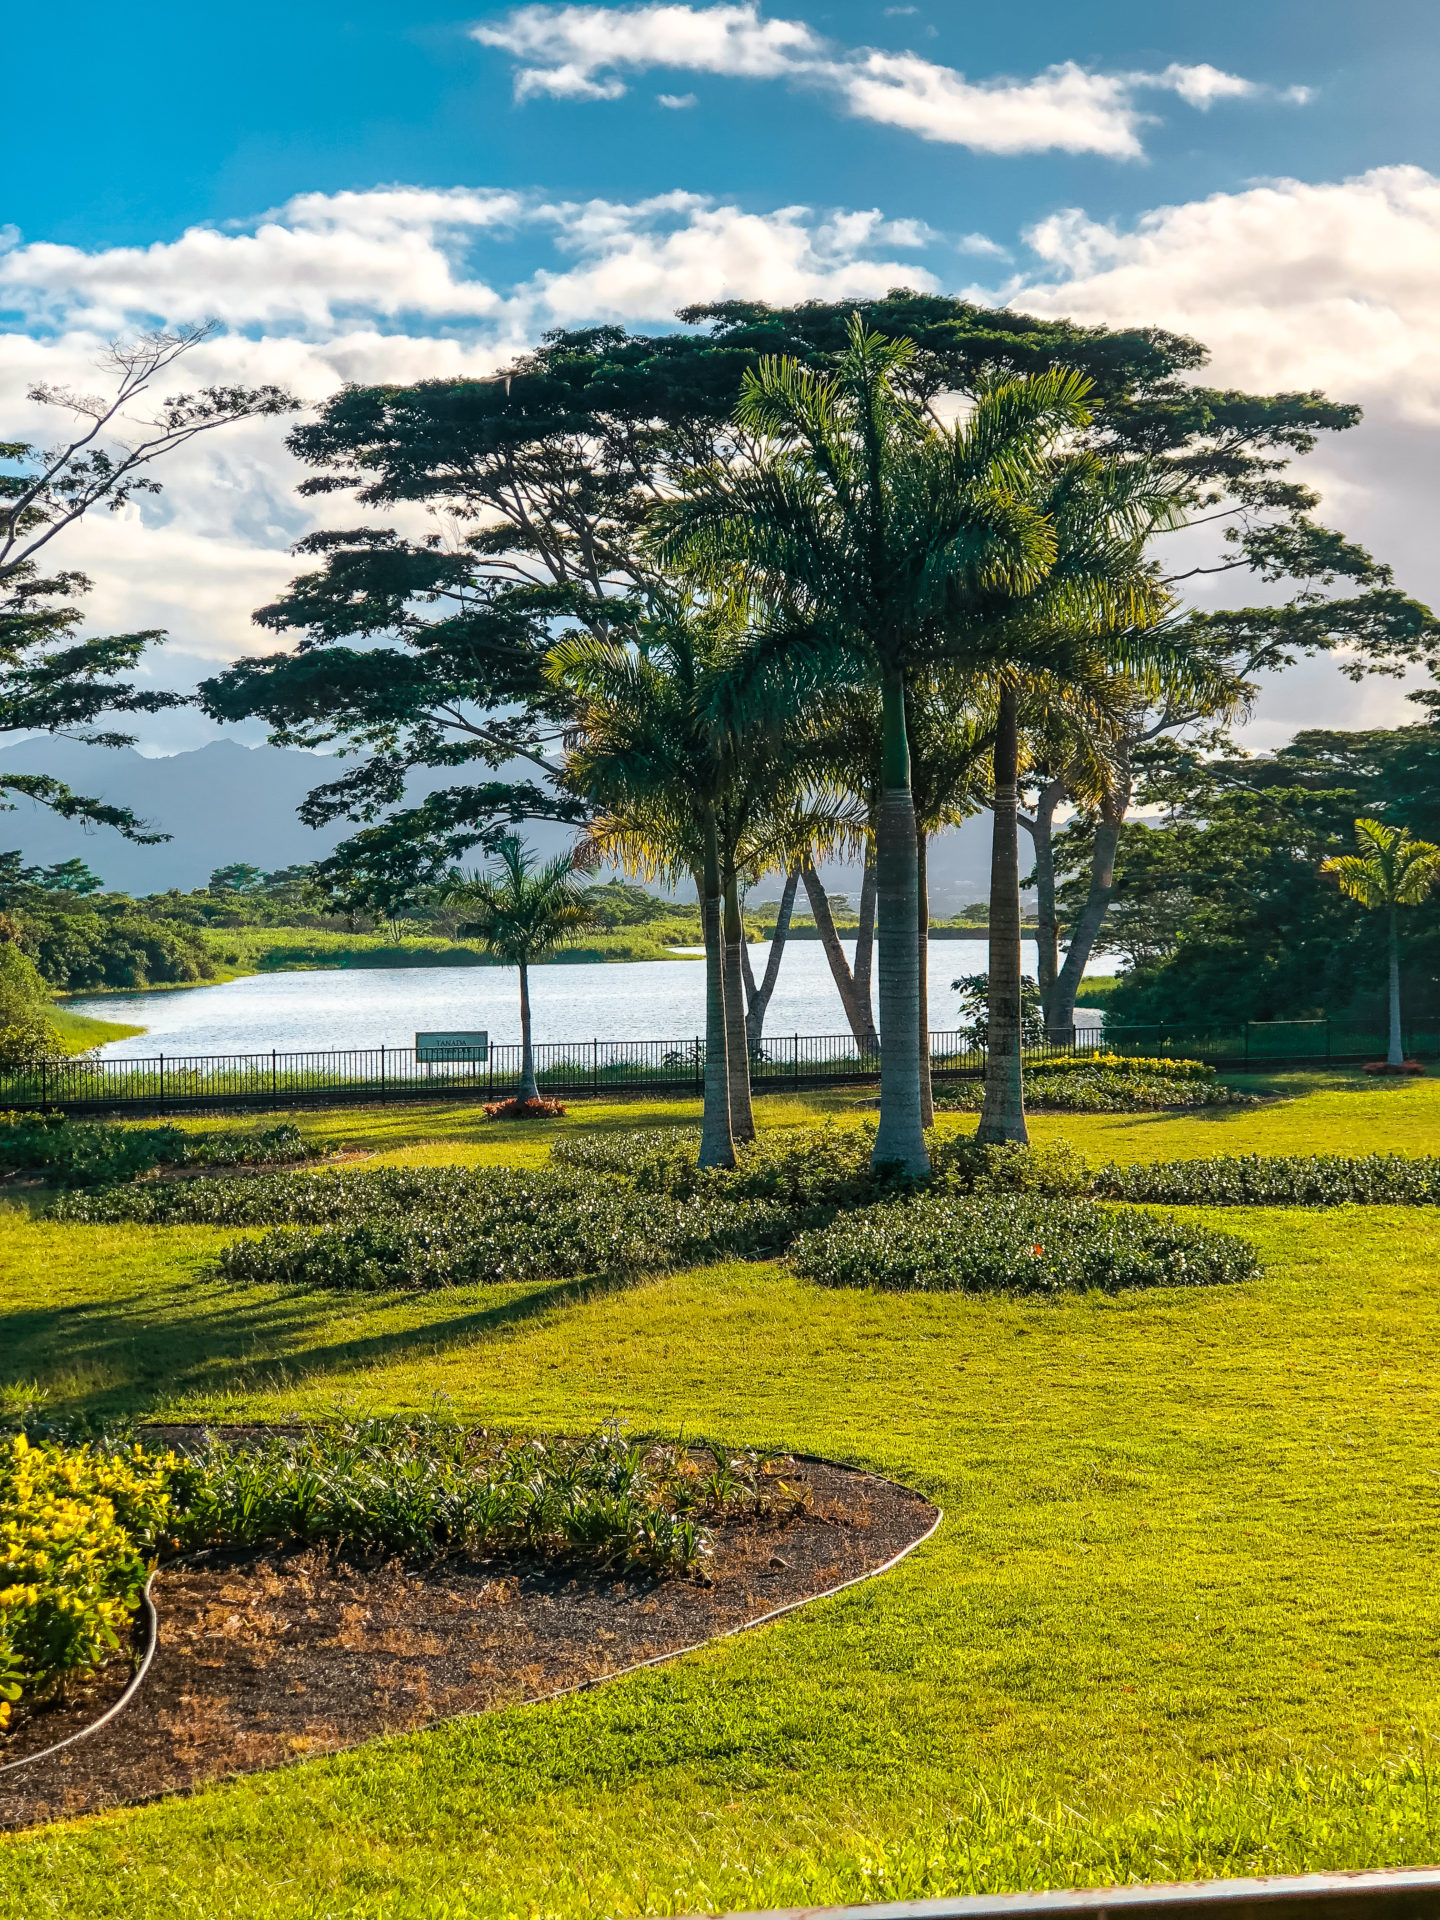 The Dole Plantation: Hawaii's Must Visit Pineapple ...